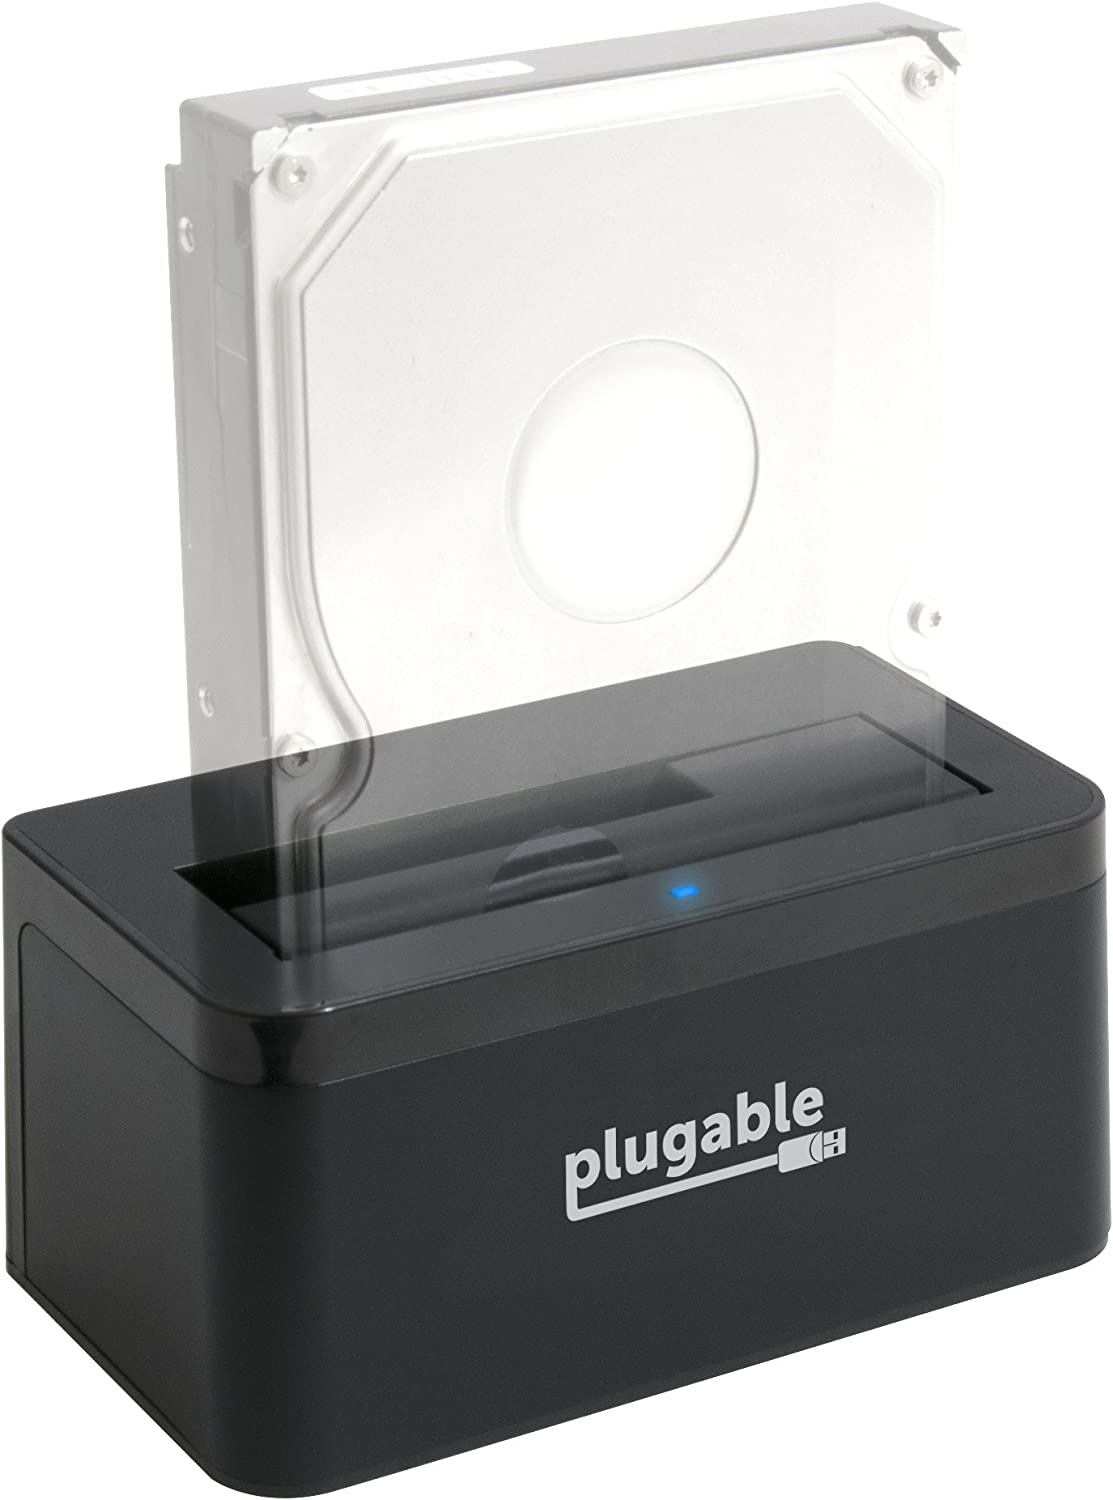 Plugable HDD Docking Station